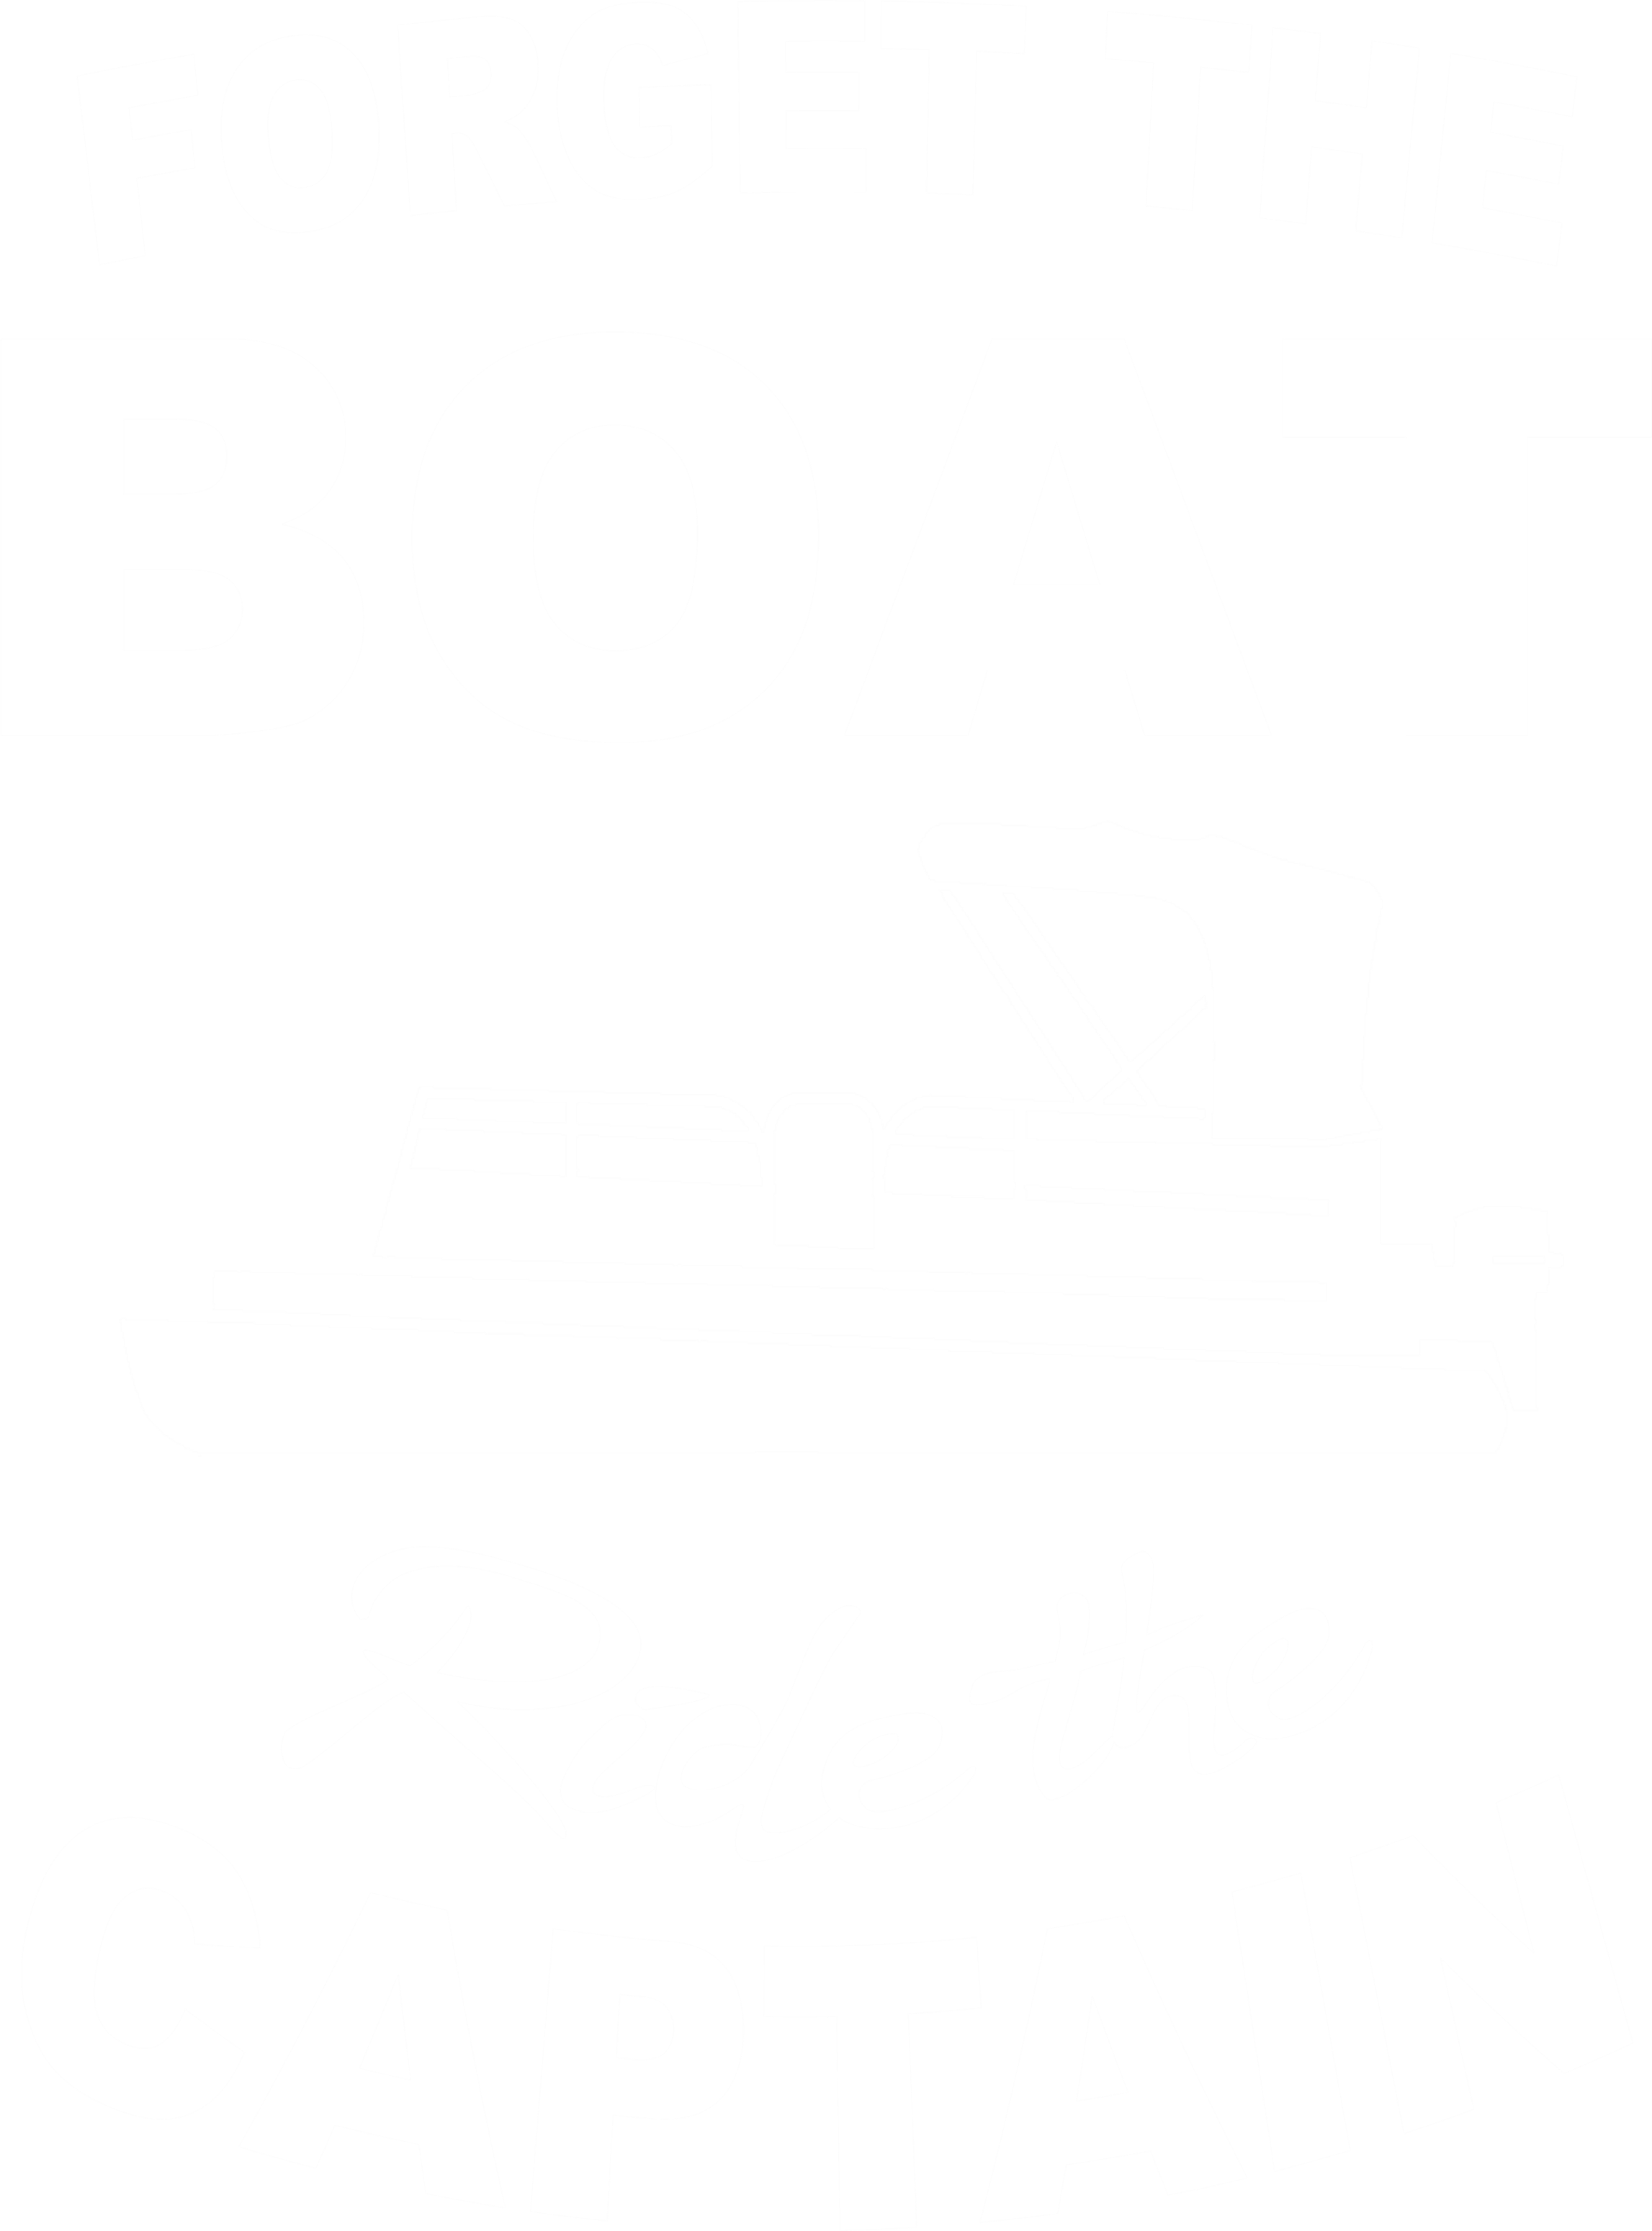 Forget The Pontoon Ride The Captain Tee